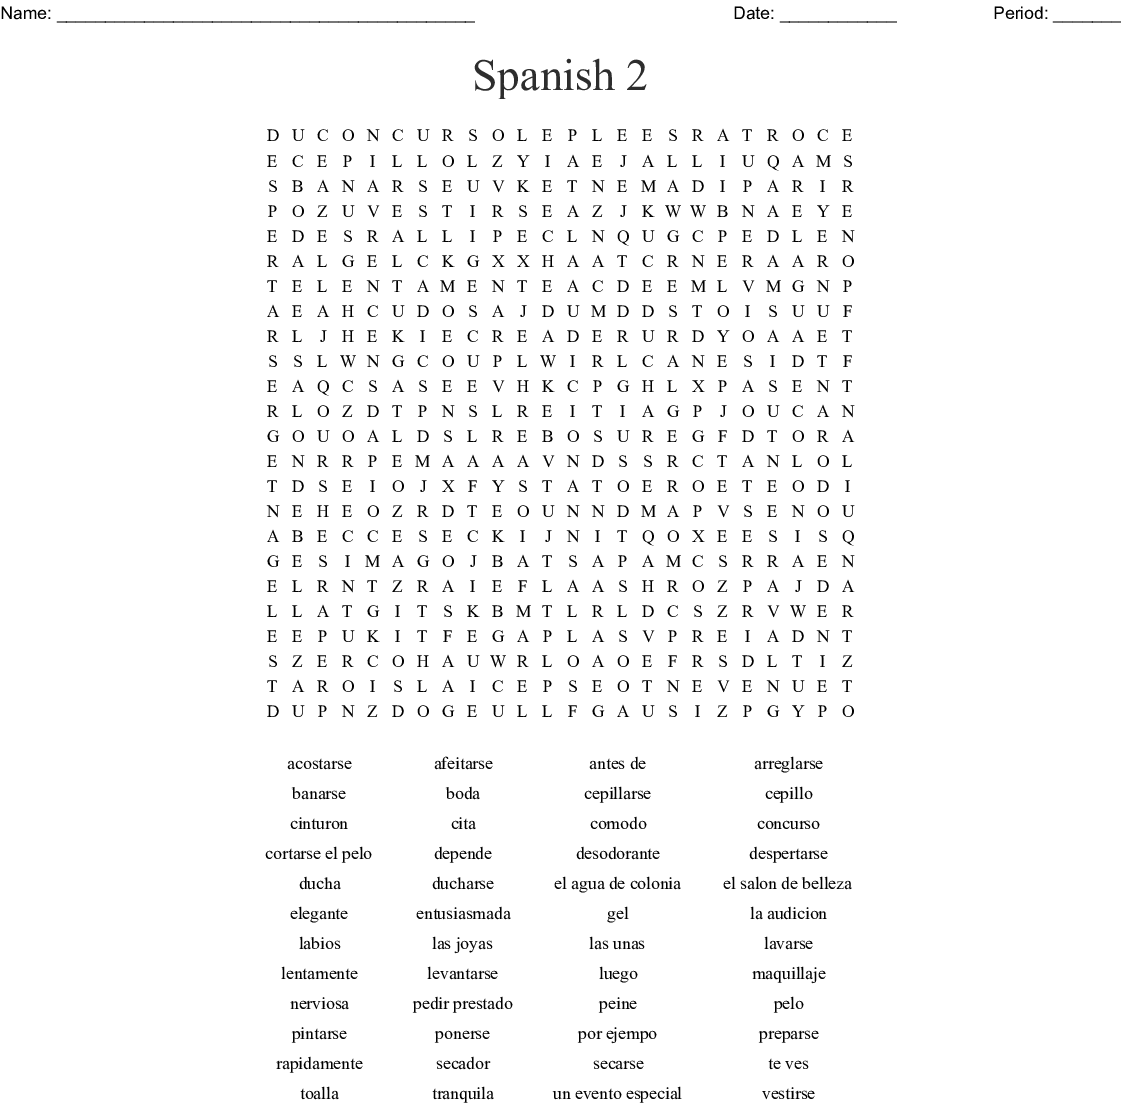 Spanish 2 Word Search - WordMint